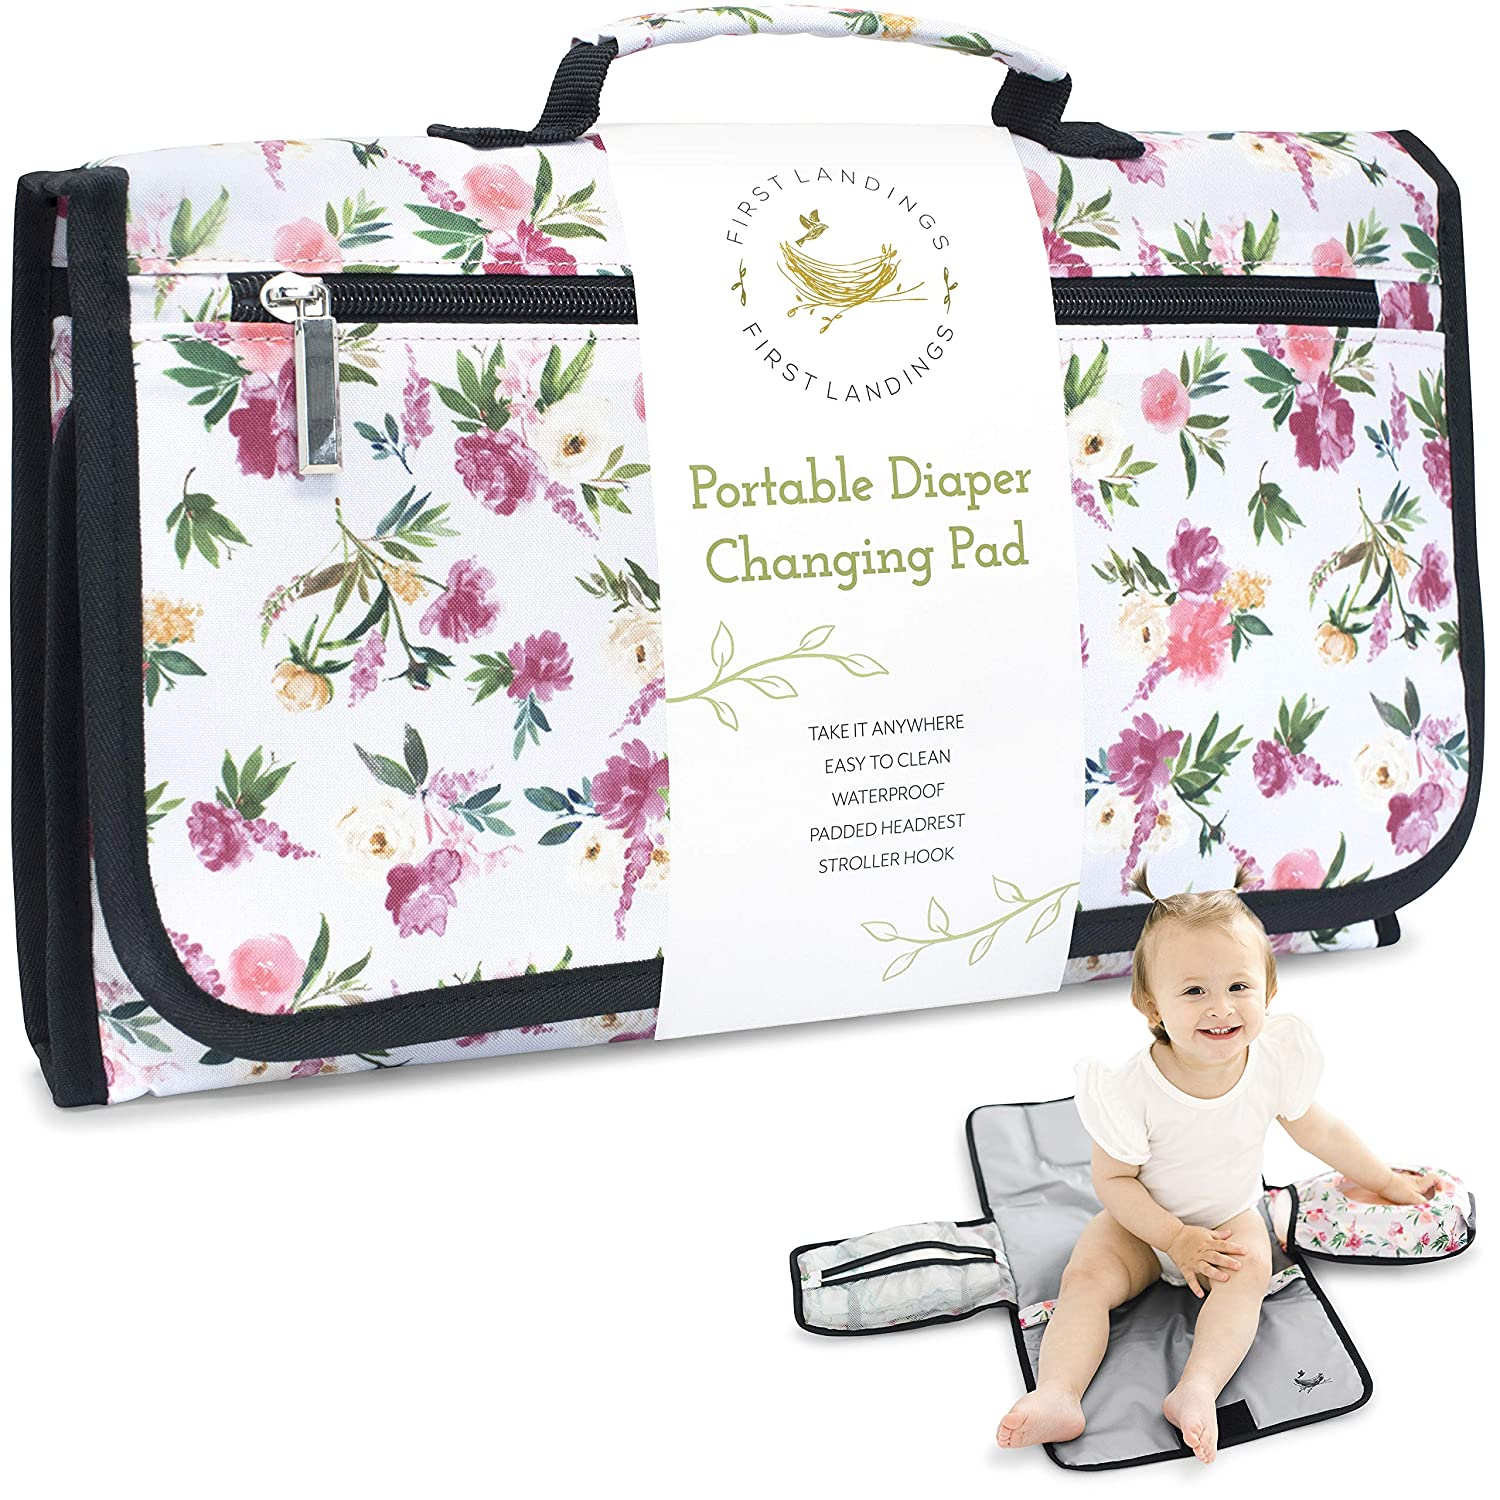 Portable Diaper Changing Pad   Convenient, On The Go Baby Travel Changing Pad   Wipe Holder for Portable Changing Mat   Portable Changing Pad for Diaper Bag   Portable Changing Table